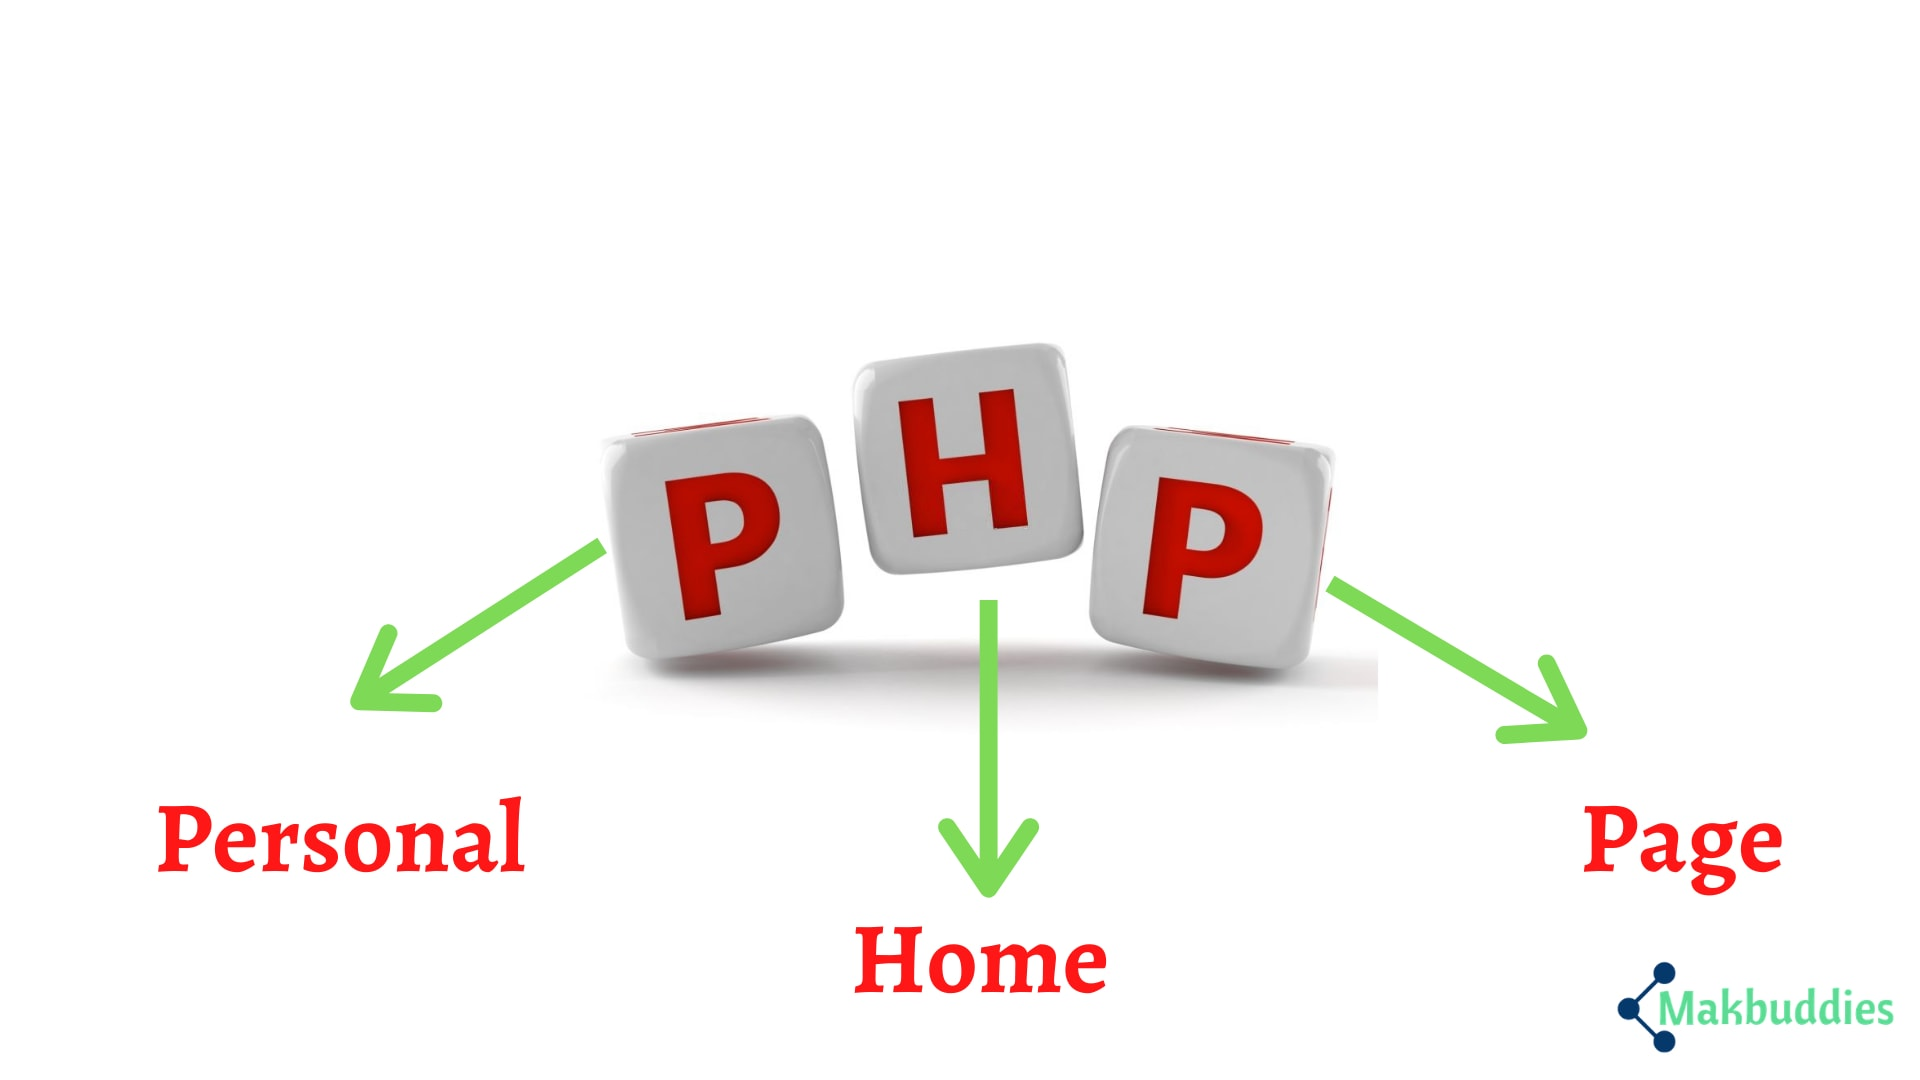 php full form - PHP Full Form | Download Latest Version 2020 of PHP